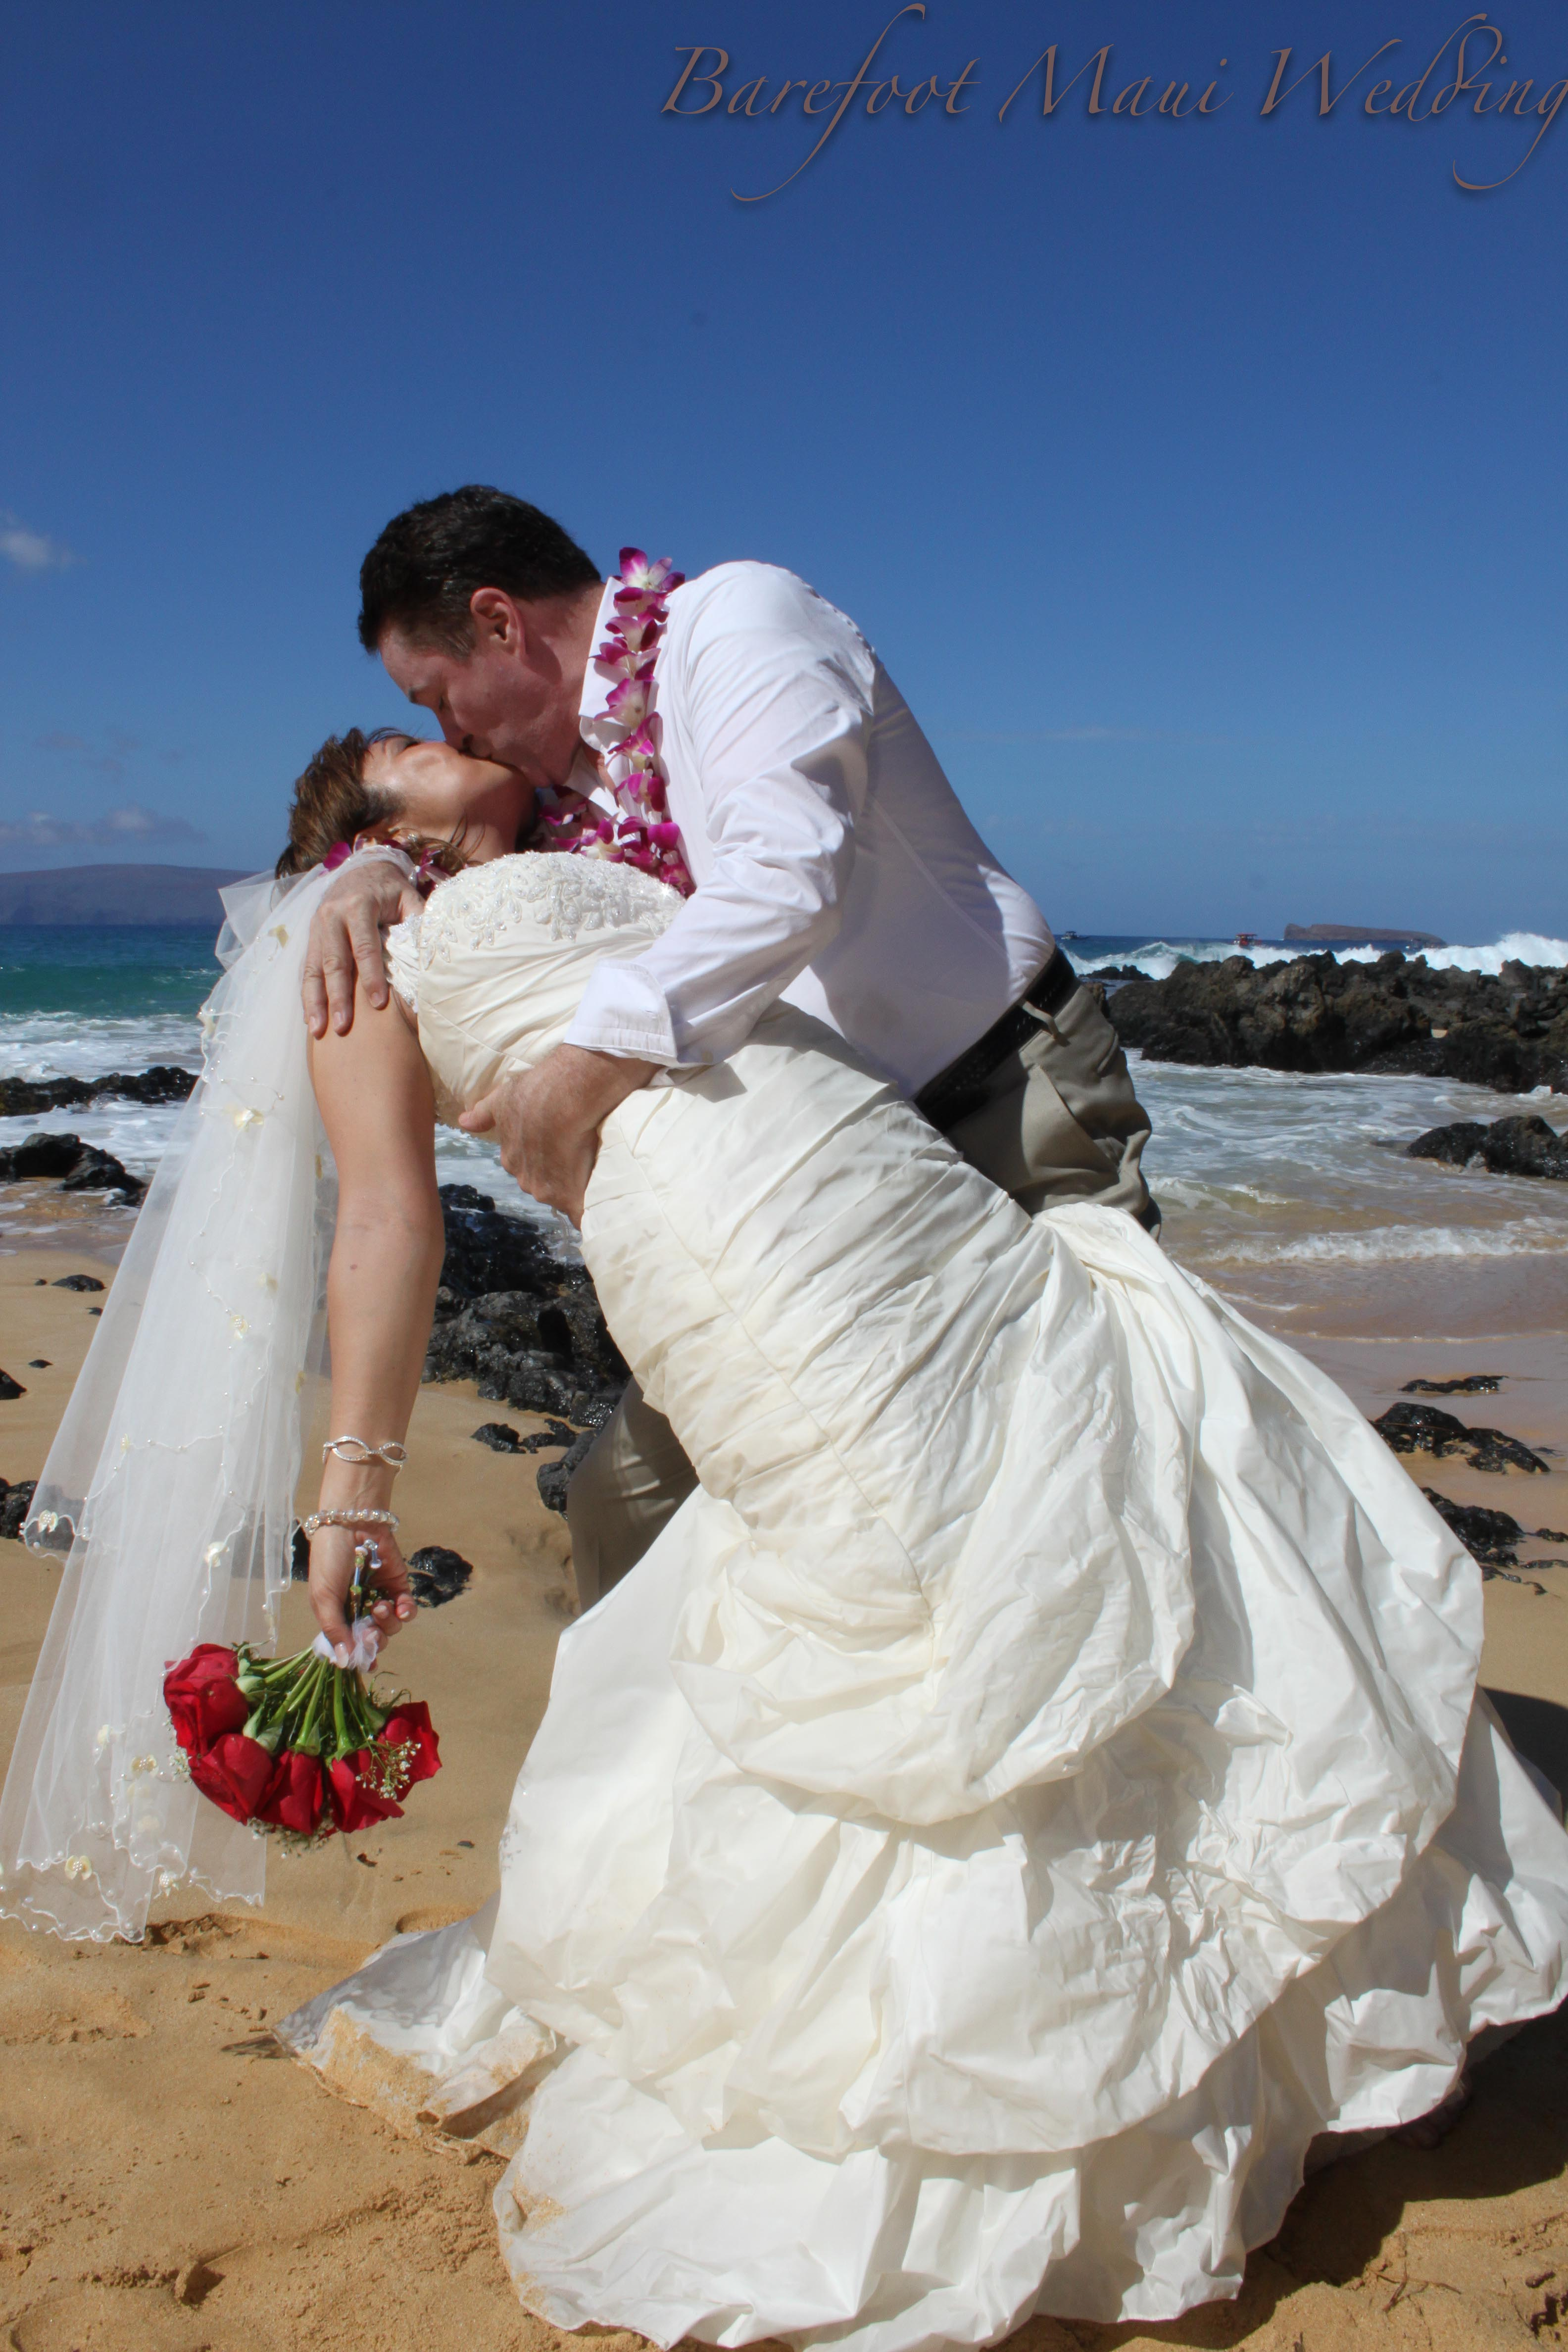 Maui Wedding Photography Reviews: Barefoot Maui Wedding Romanticc PHotography